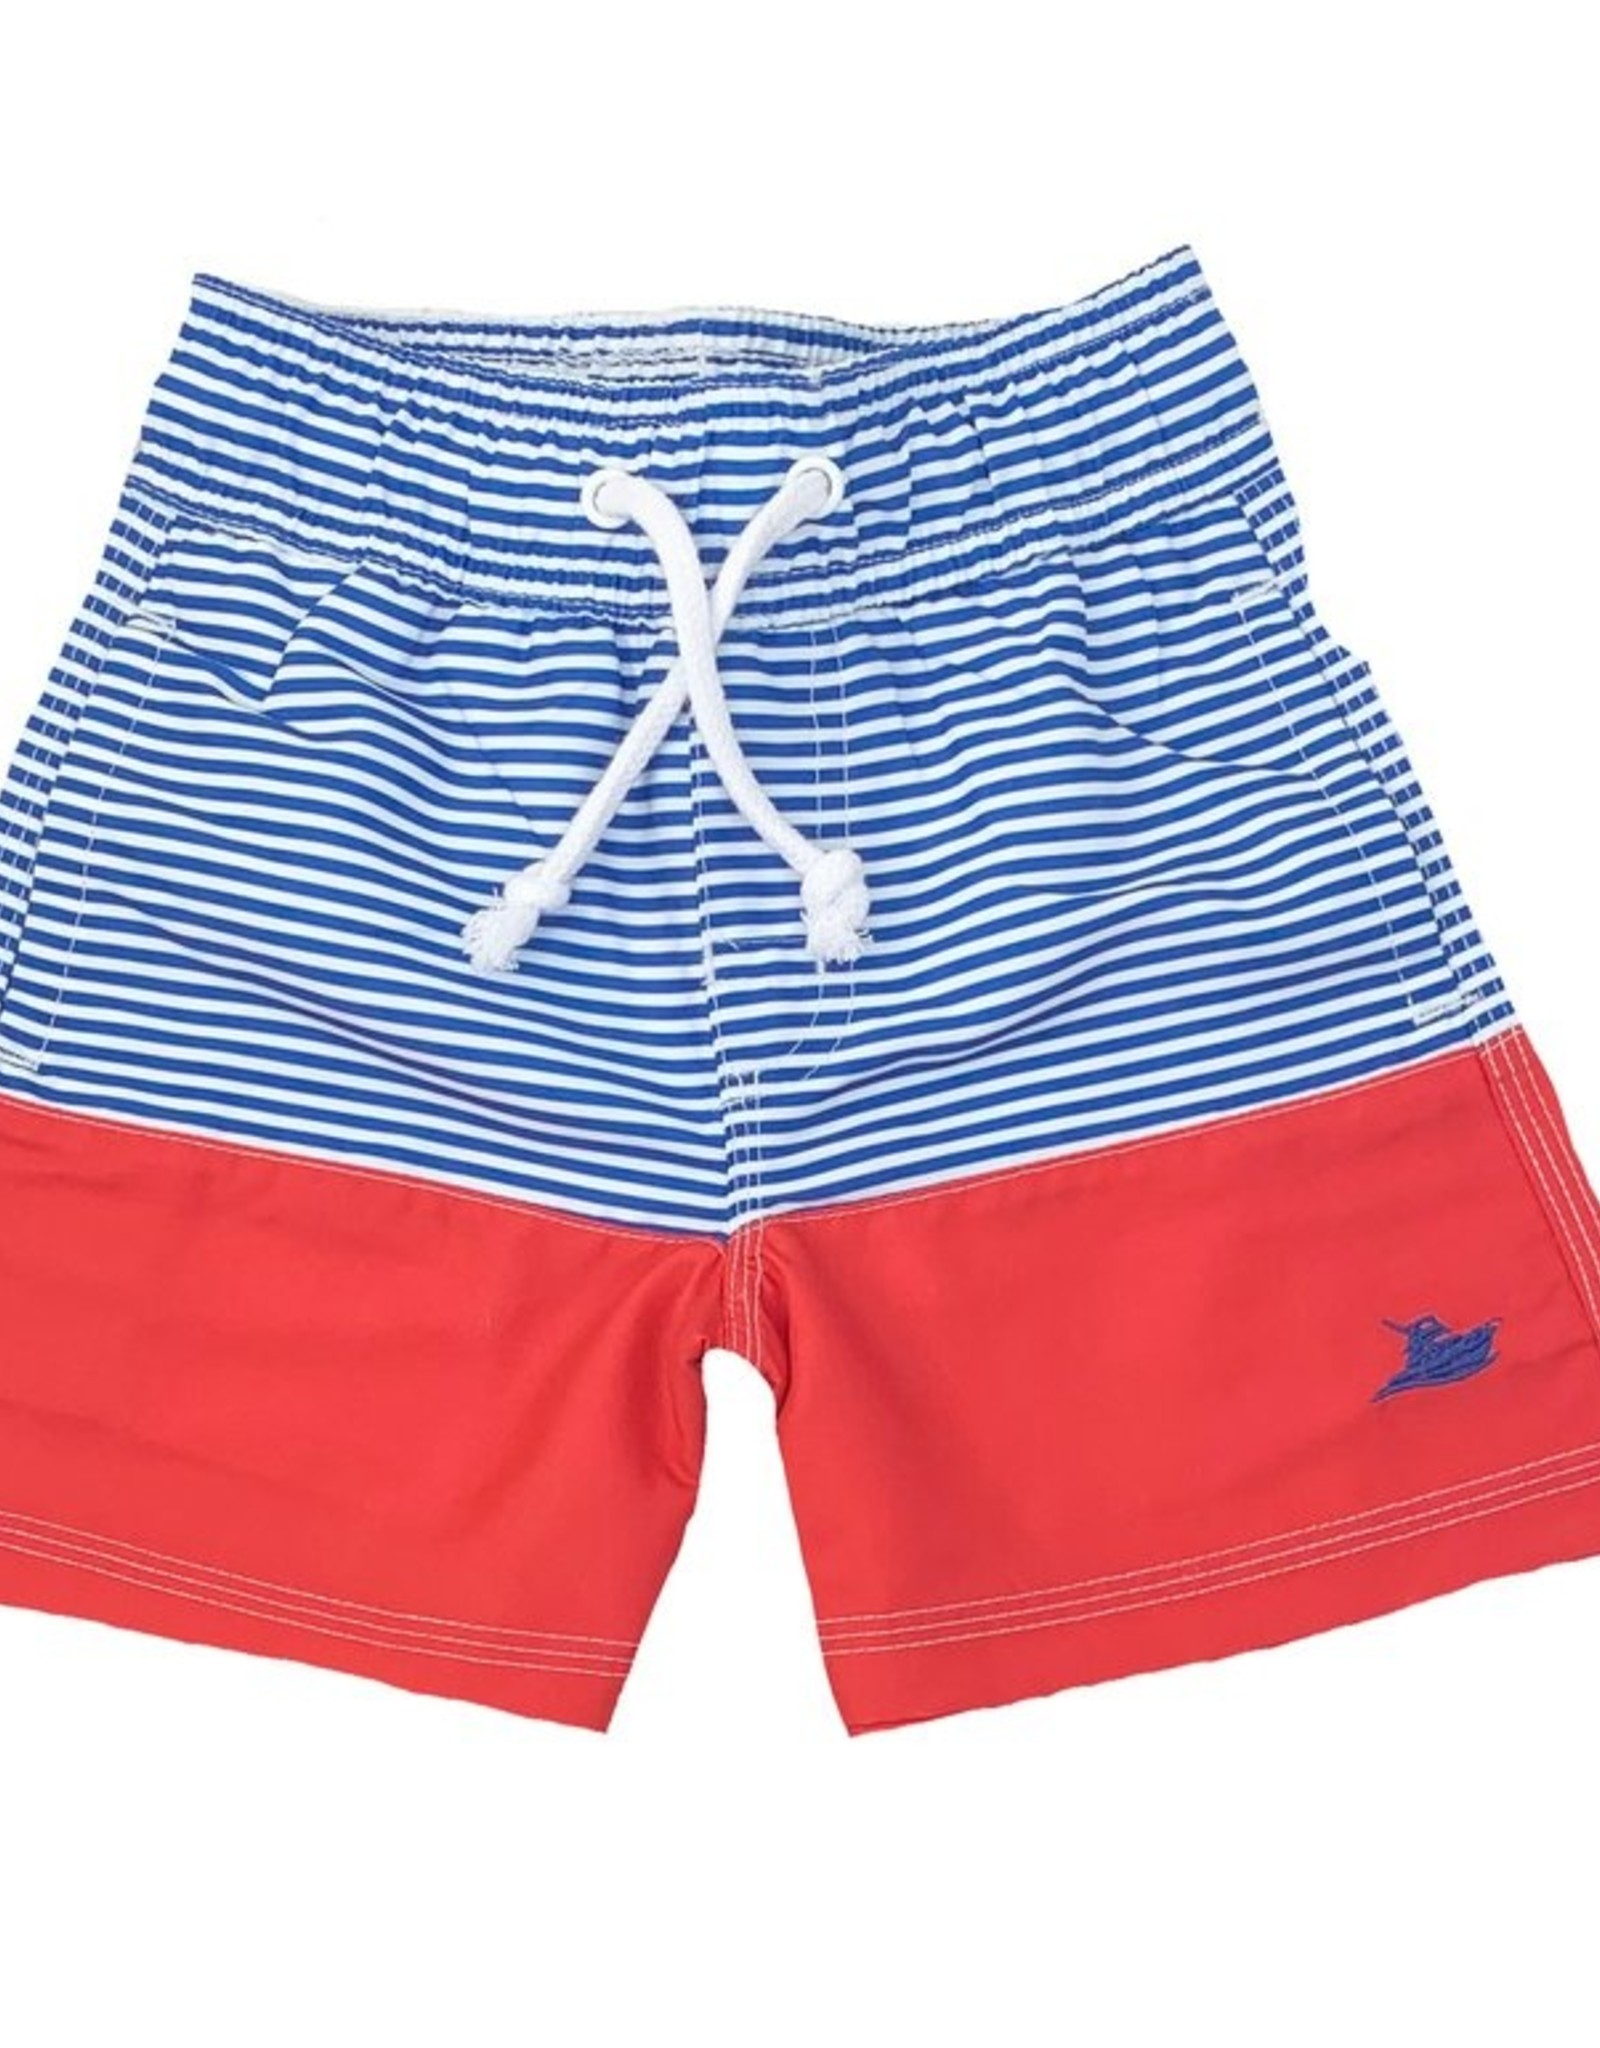 SouthBound Royal Stripe And Red Swim Trunks